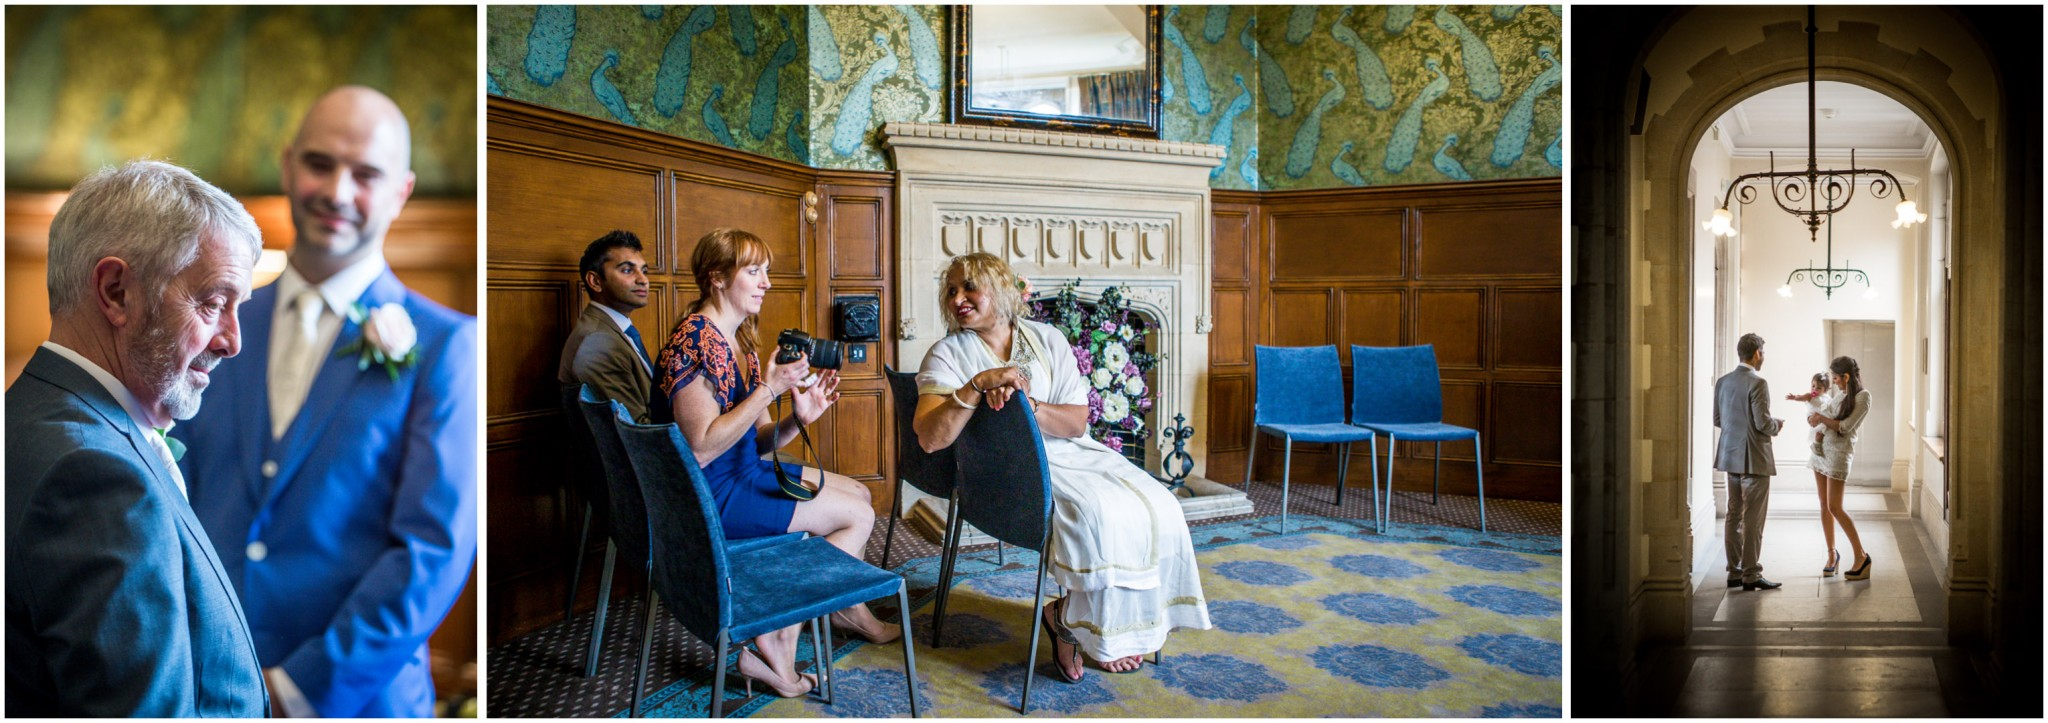 winchester-basing-room-wedding-photography-011